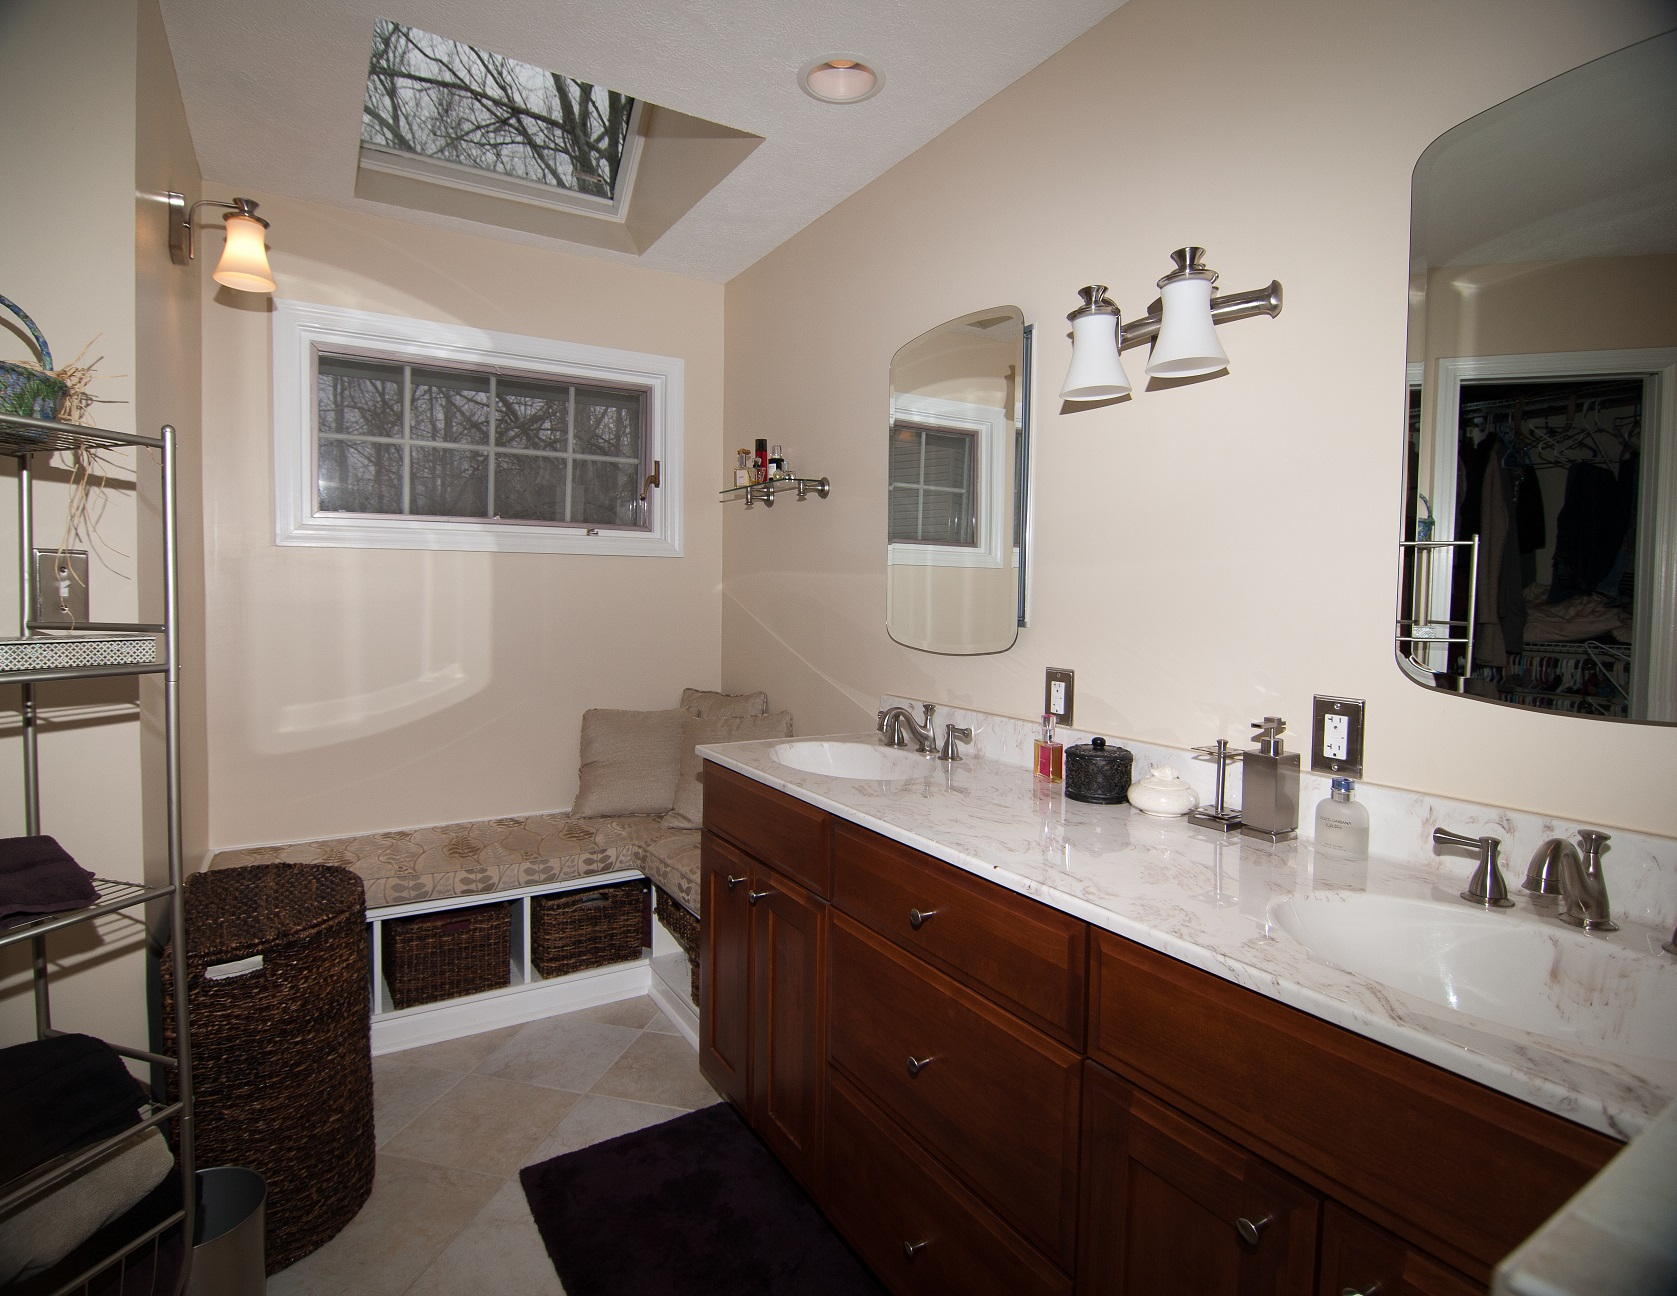 Transform the inside of your home with a kitchen or bathroom remodel